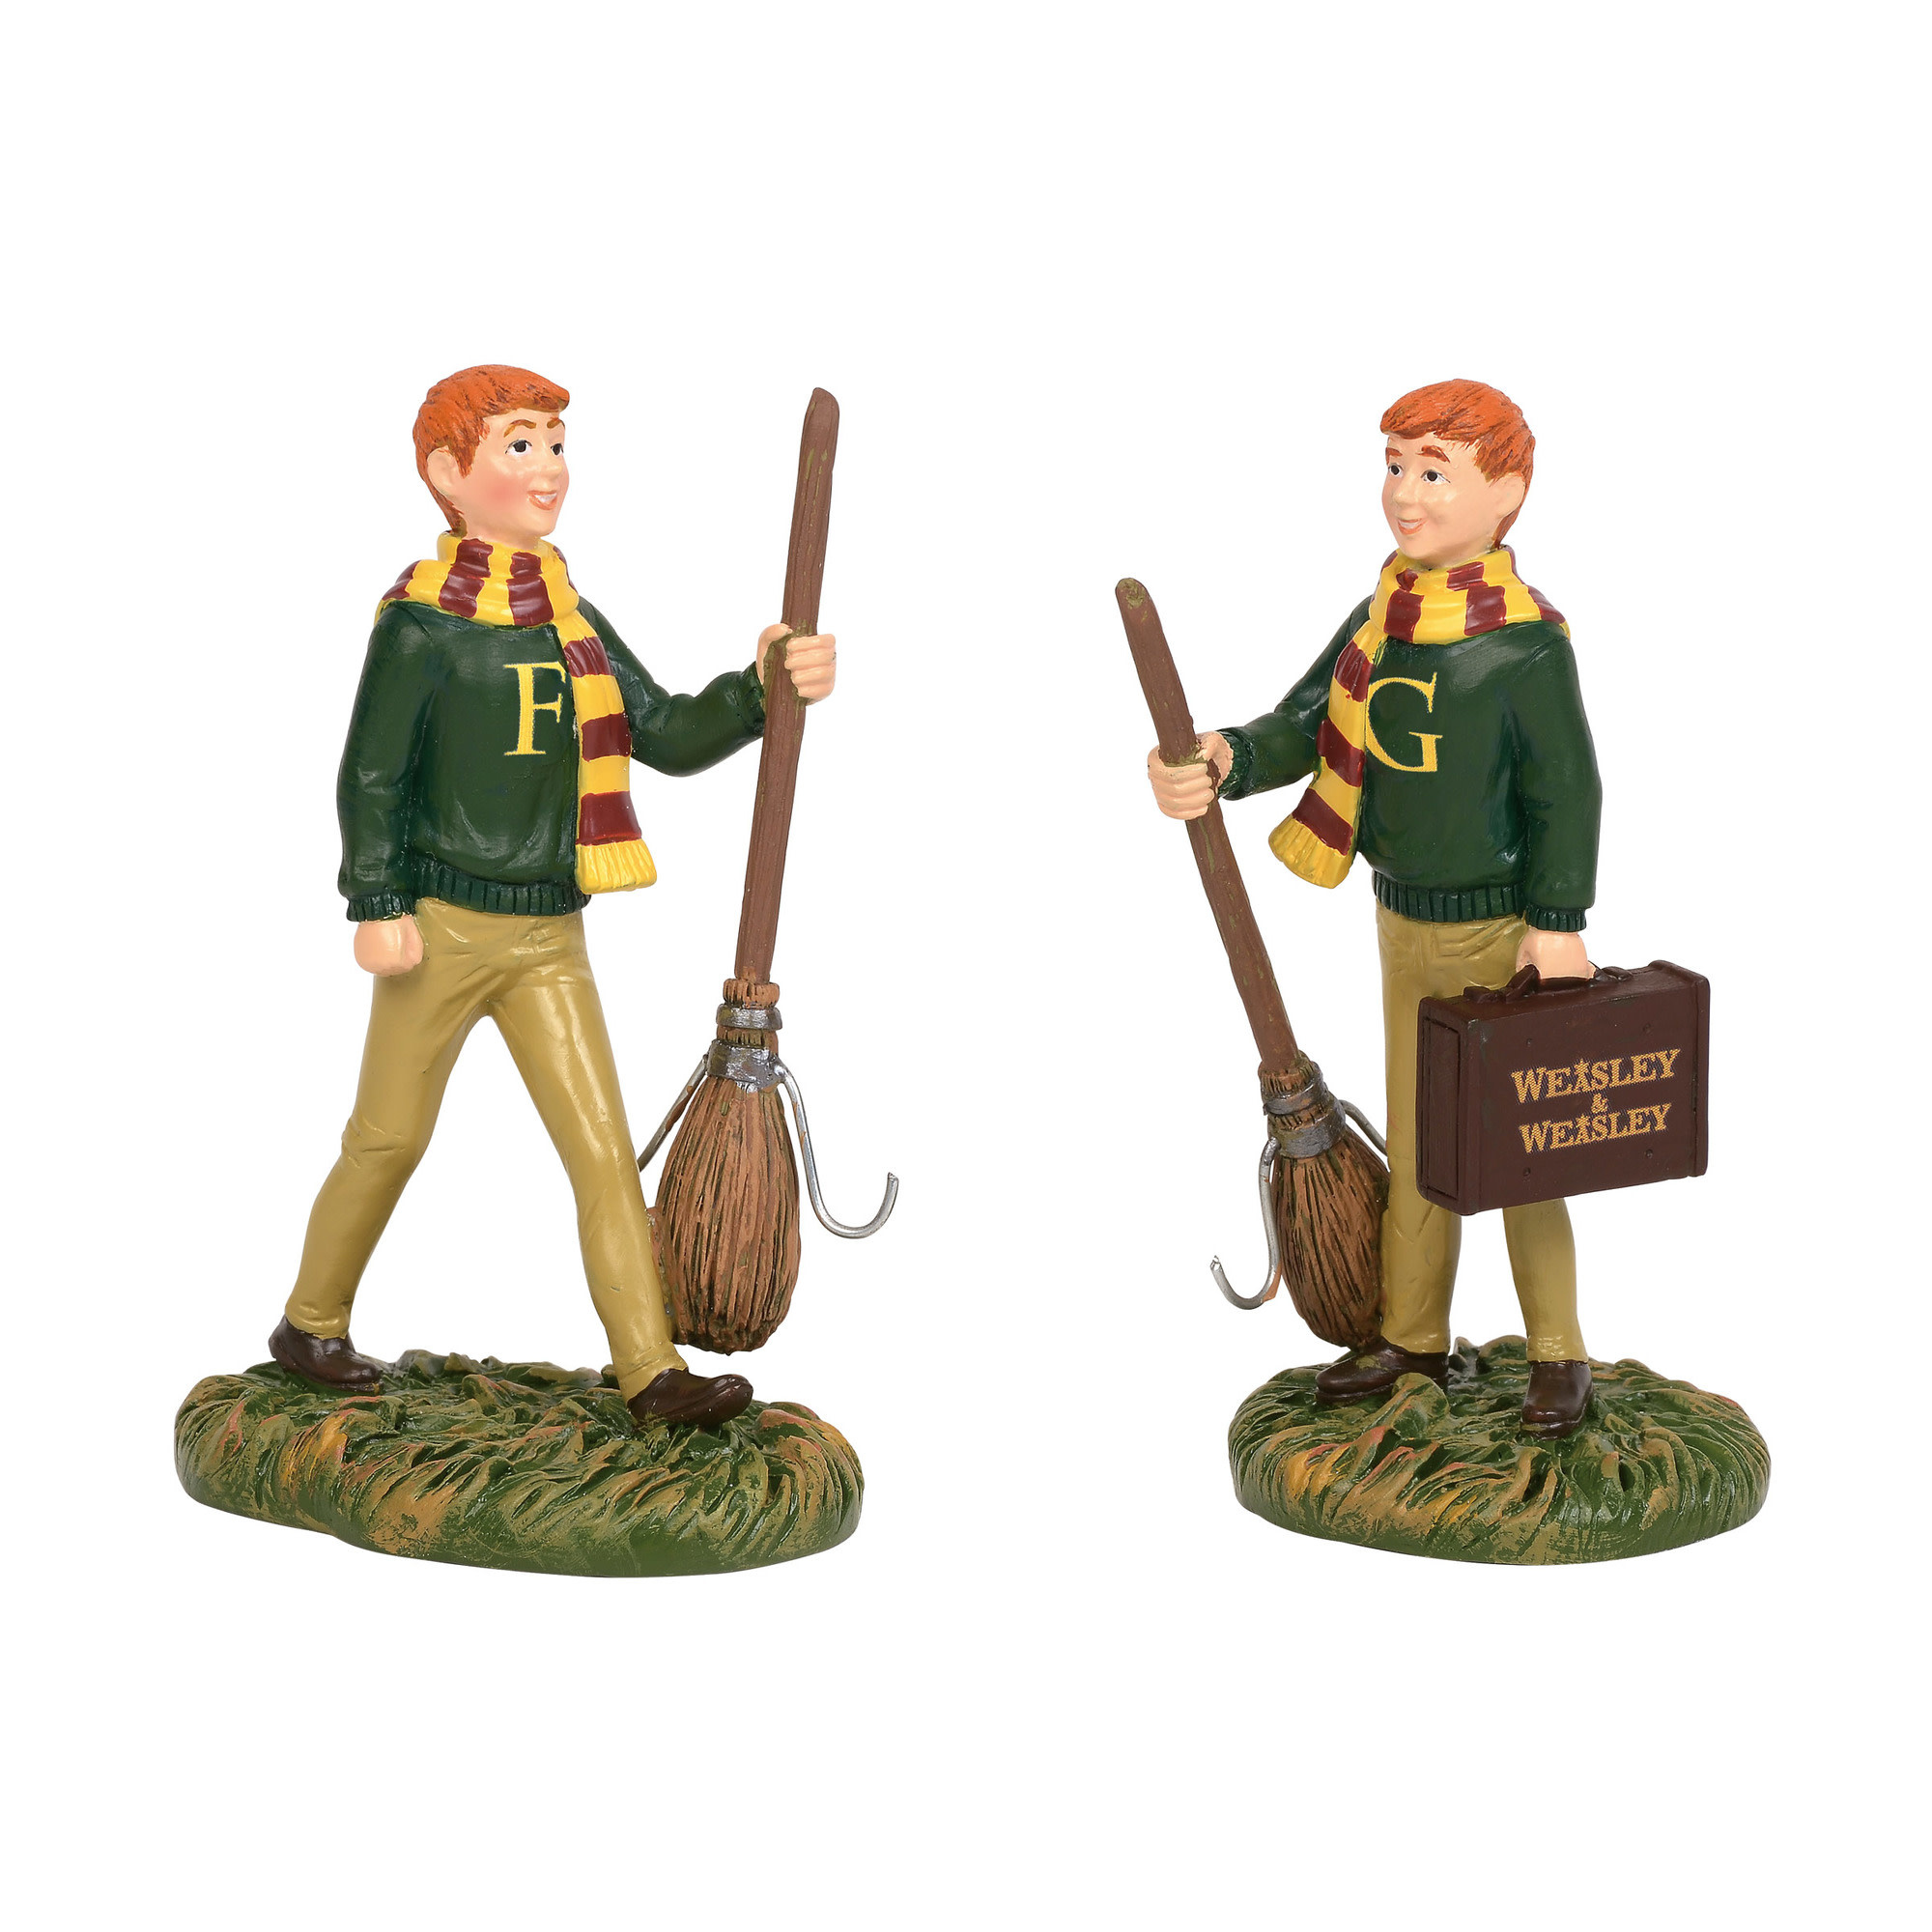 Department 56 Harry Potter Village Fred & George Weasley